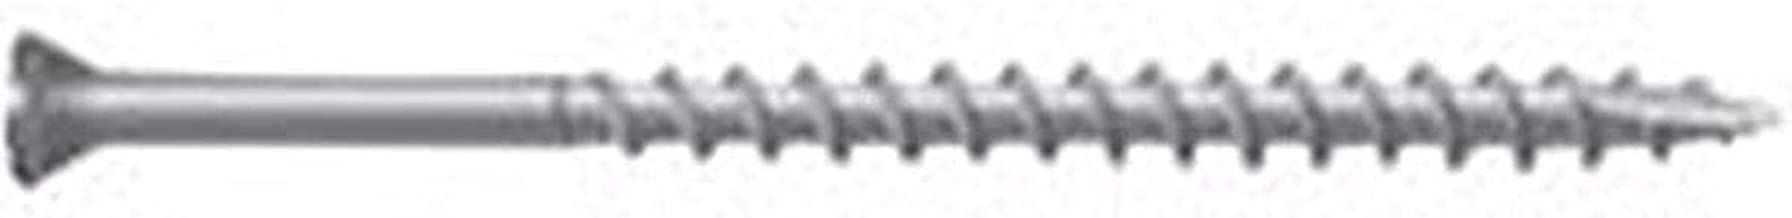 NATIONAL NAIL Camo 0353650S Deck Screw, NO 8 X 2-1/2 In, 316 Stainless Steel